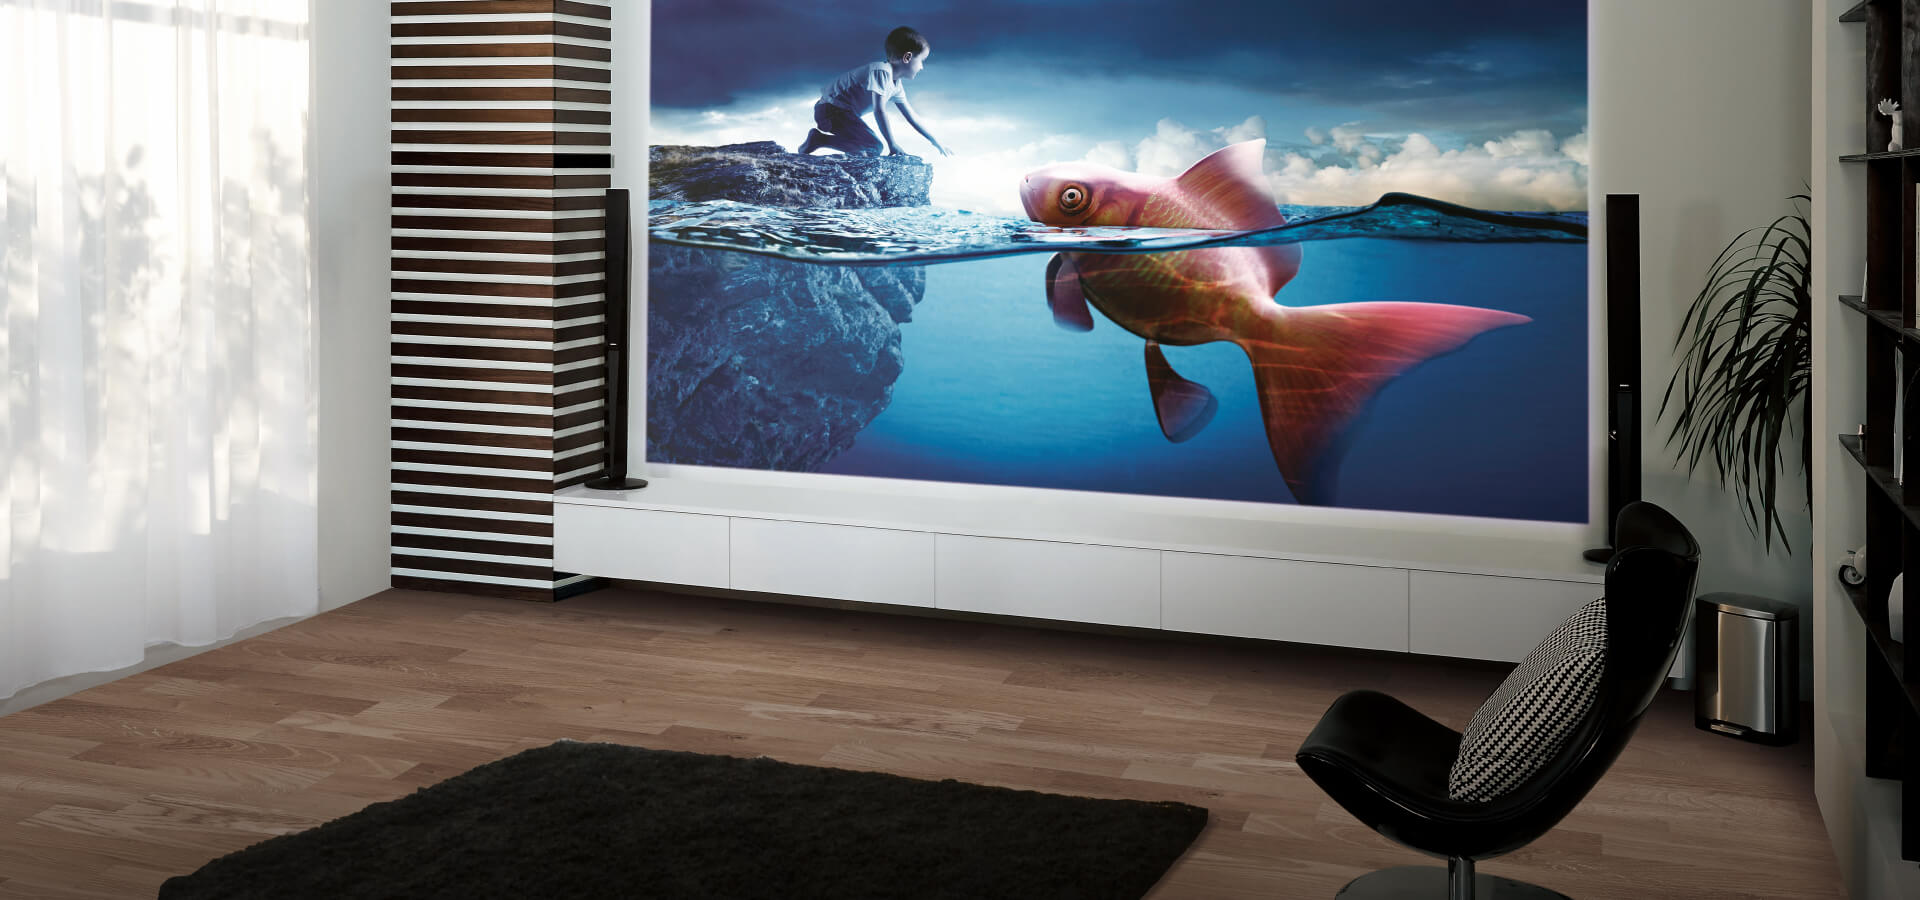 BenQ W1090 Full HD Home Cinema Projector for Sports